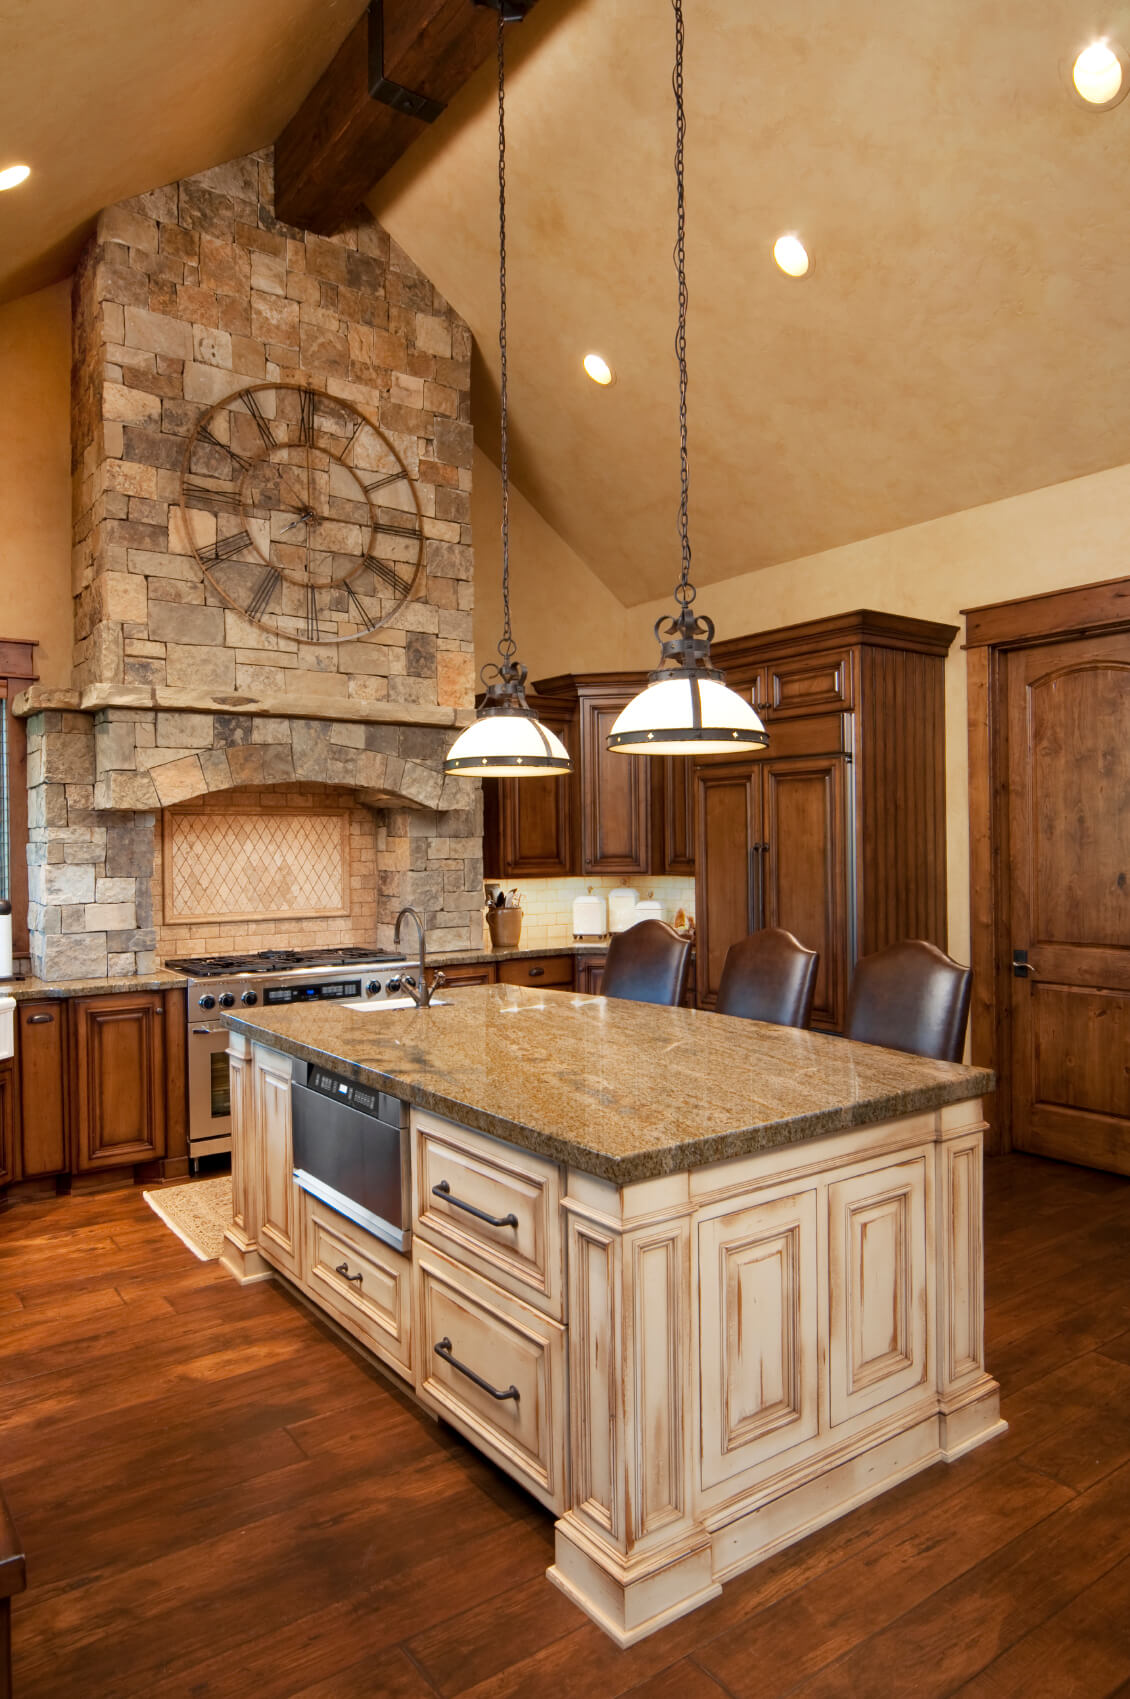 Charm Wood Kitchen Hs This Contrasting Light Wood Islandat Kitchen Island Ideas Black Wood Kitchen Island Black Kitchen Island Wood kitchen Black Wood Kitchen Island